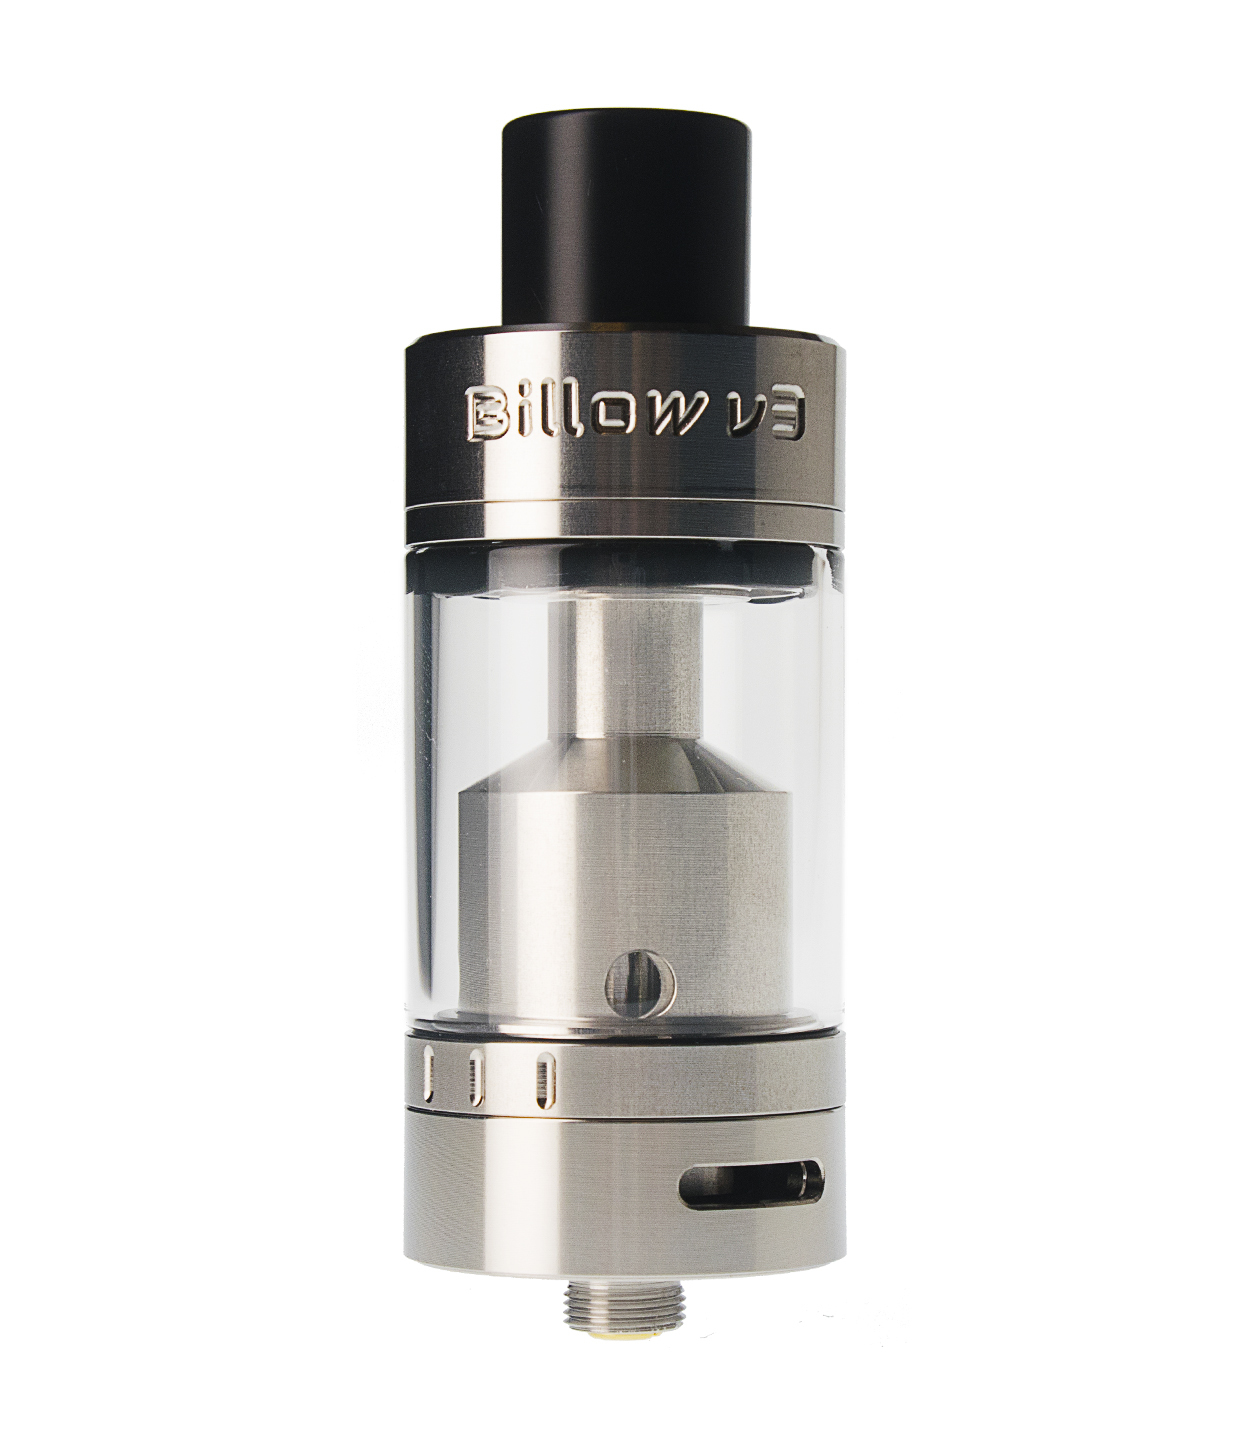 EHPRO: Атомайзер (RTA) Billow V3 Plus фото #3